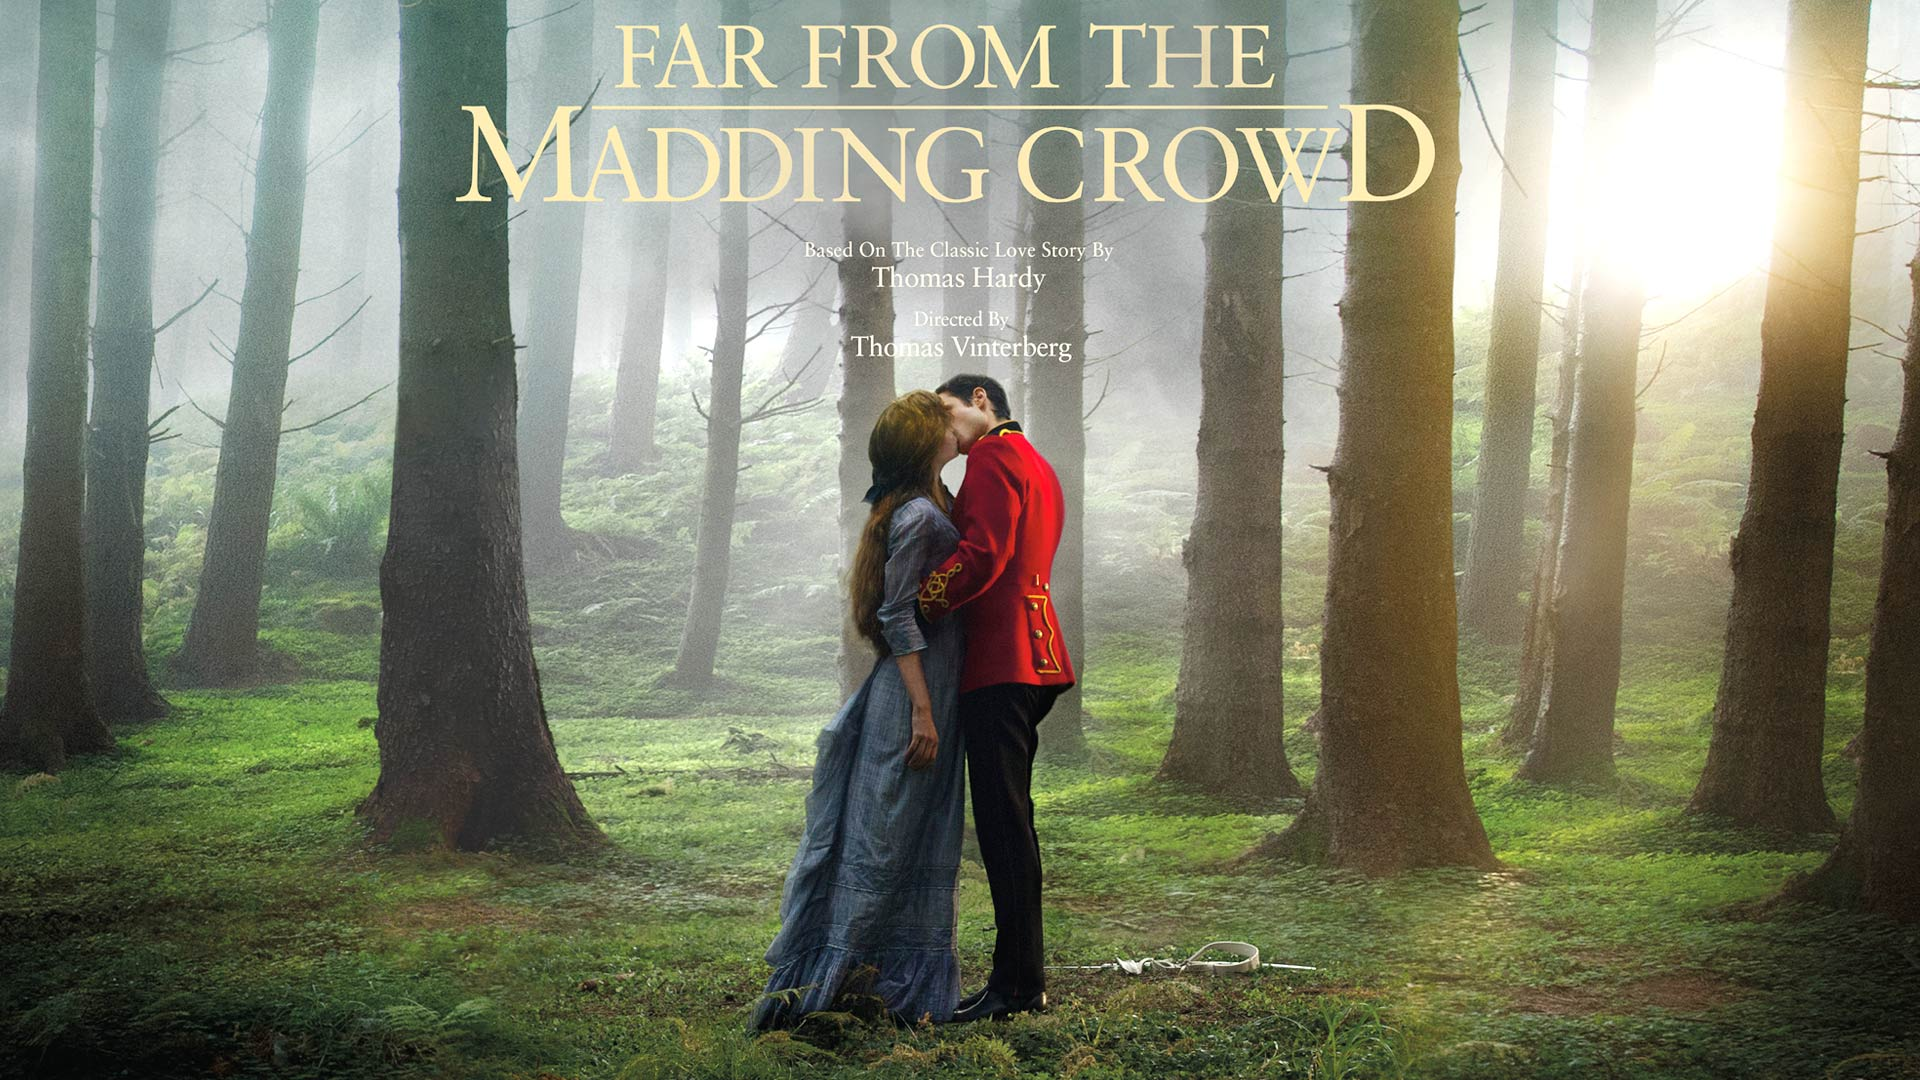 an introduction to far from the madding crowd 'far from the madding crowd' is set in the early 19th century where women evidently had an inferior status compared to men, and were frequently limited on what.